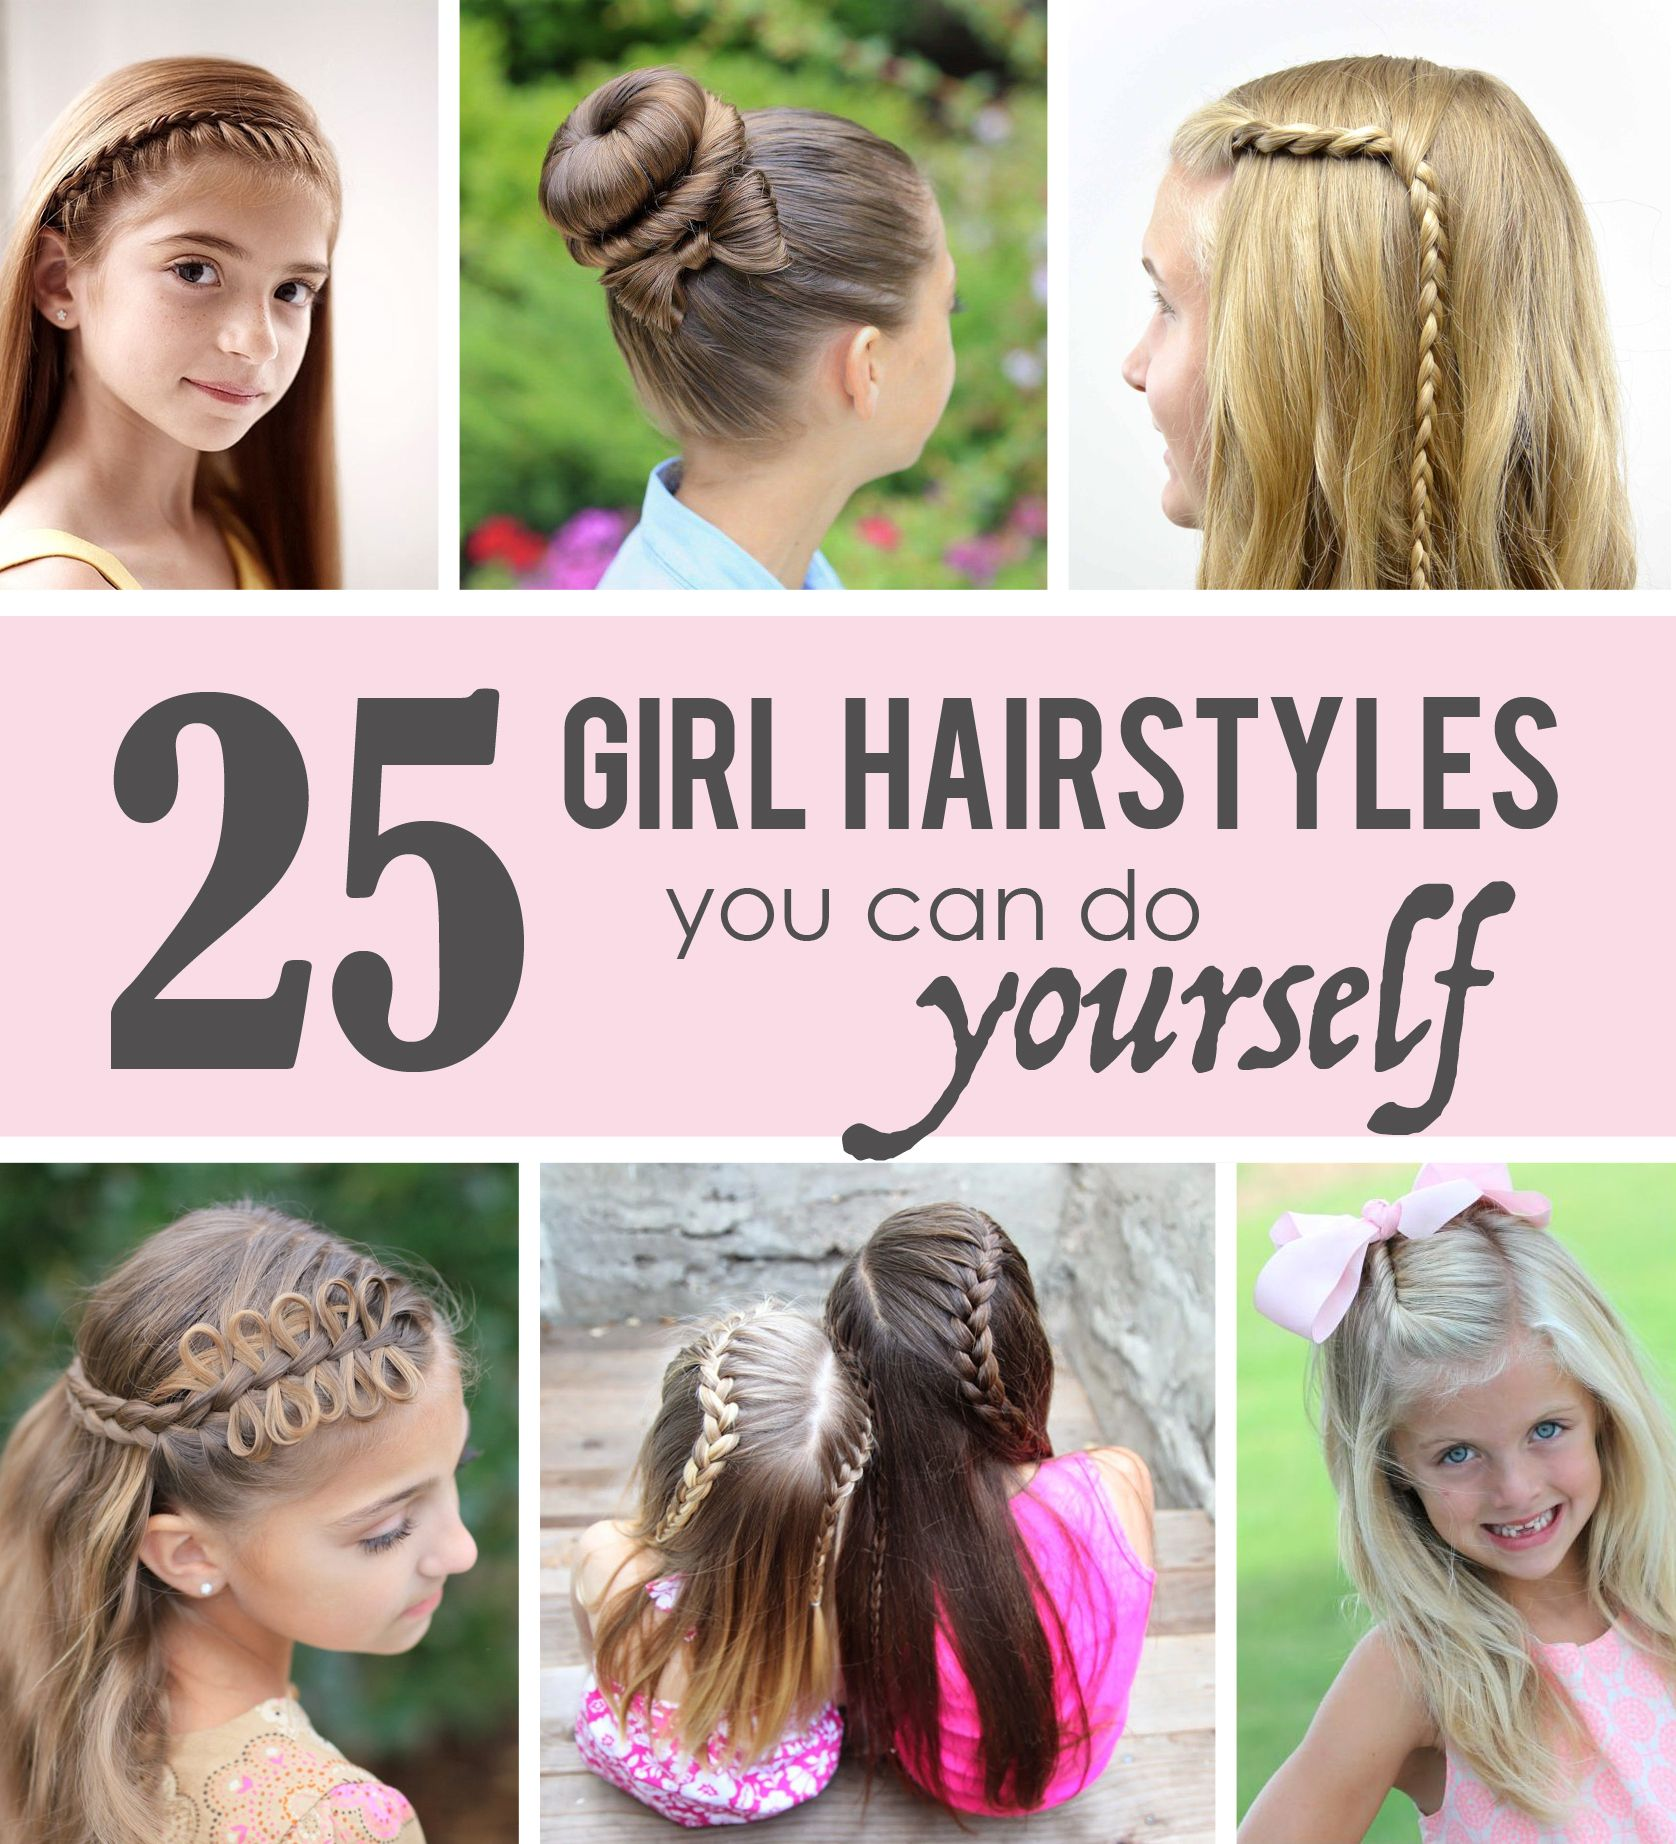 25 Little Girl Hairstyles You Can Do Yourself Hair Styles Little Girl Hairstyles Easy Hairstyles